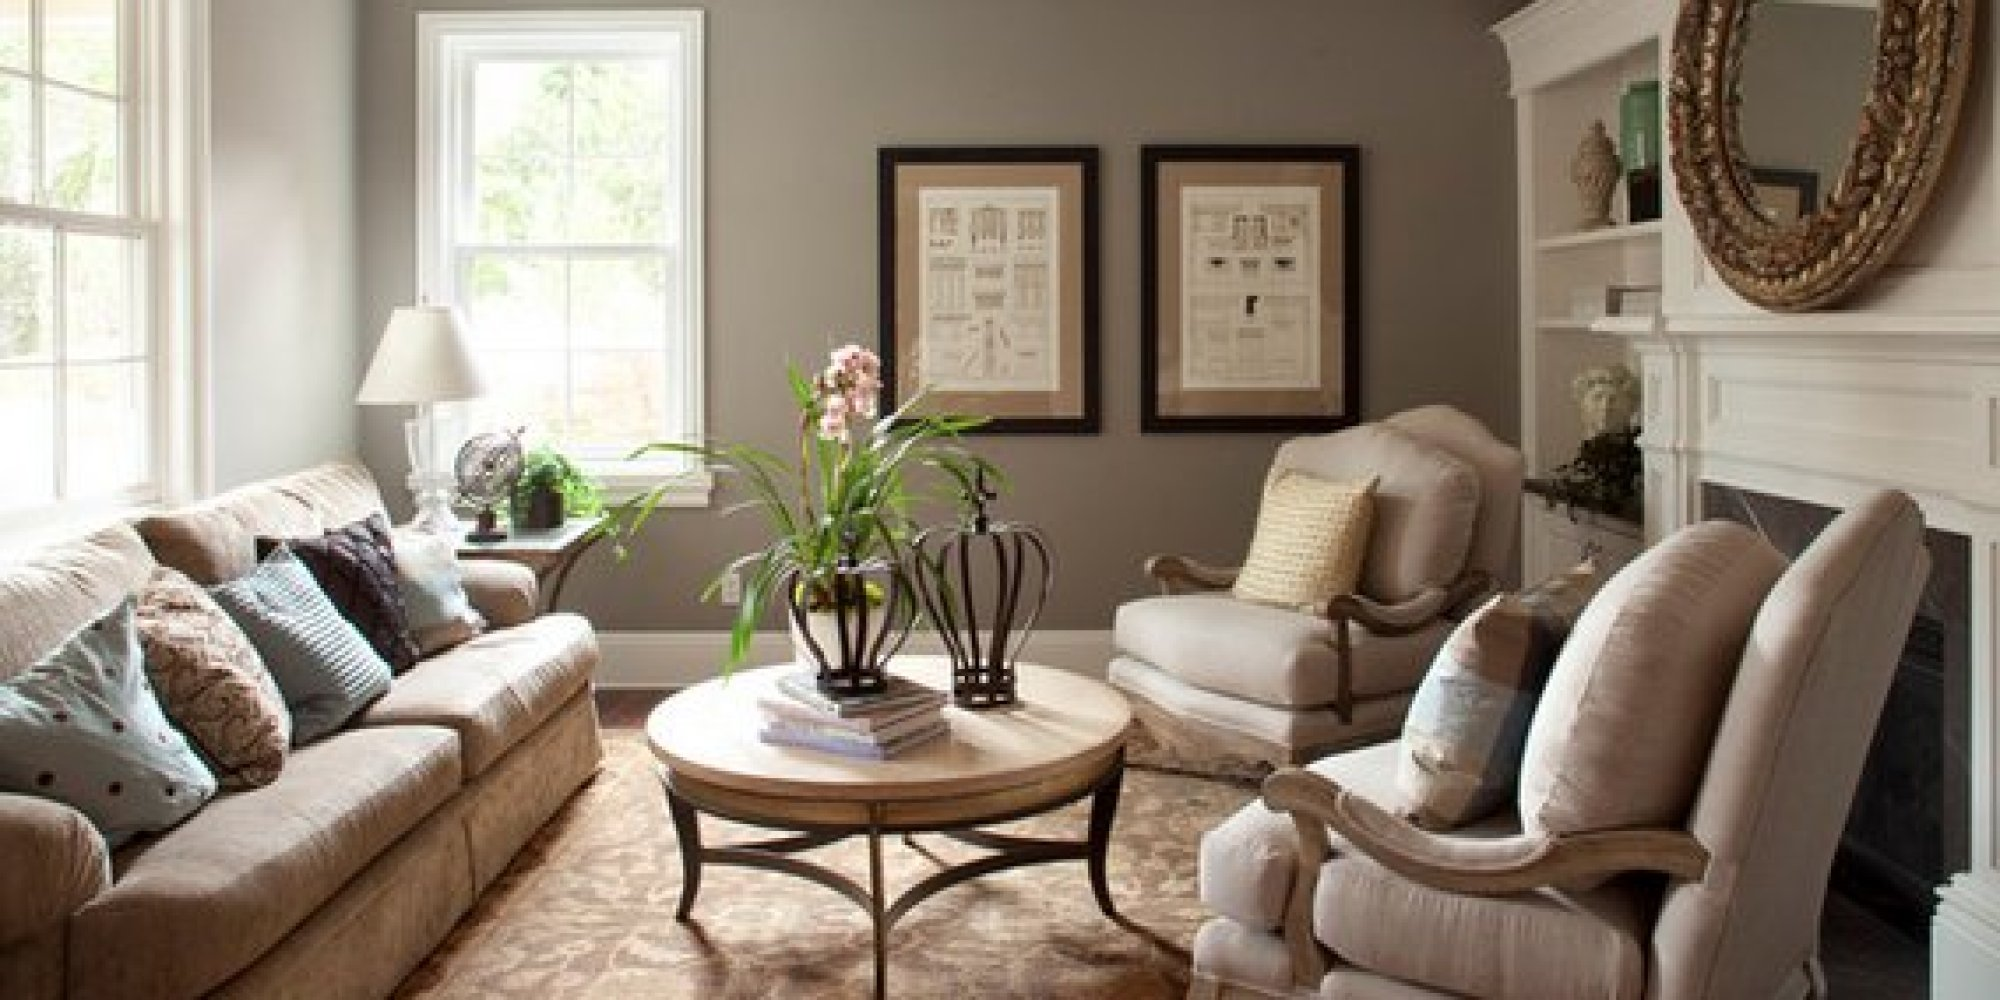 Newest Paint Colors For Living Rooms The 6 Best Paint Colors That Work In Any Home  Huffpost